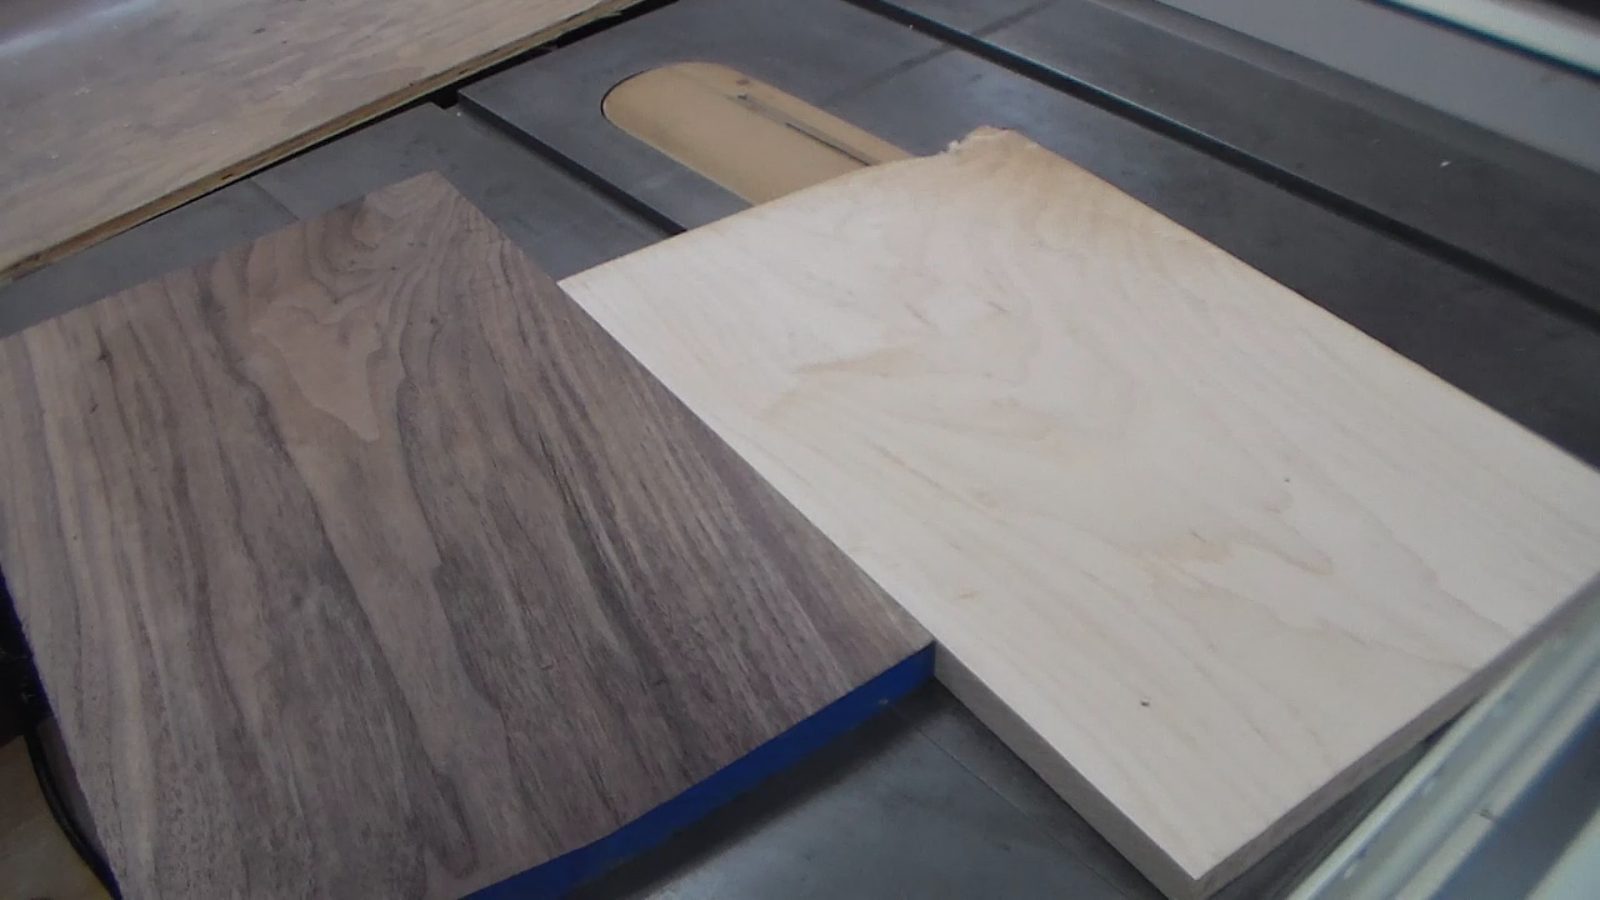 Making The Drunken Cutting Board! - Shop Time